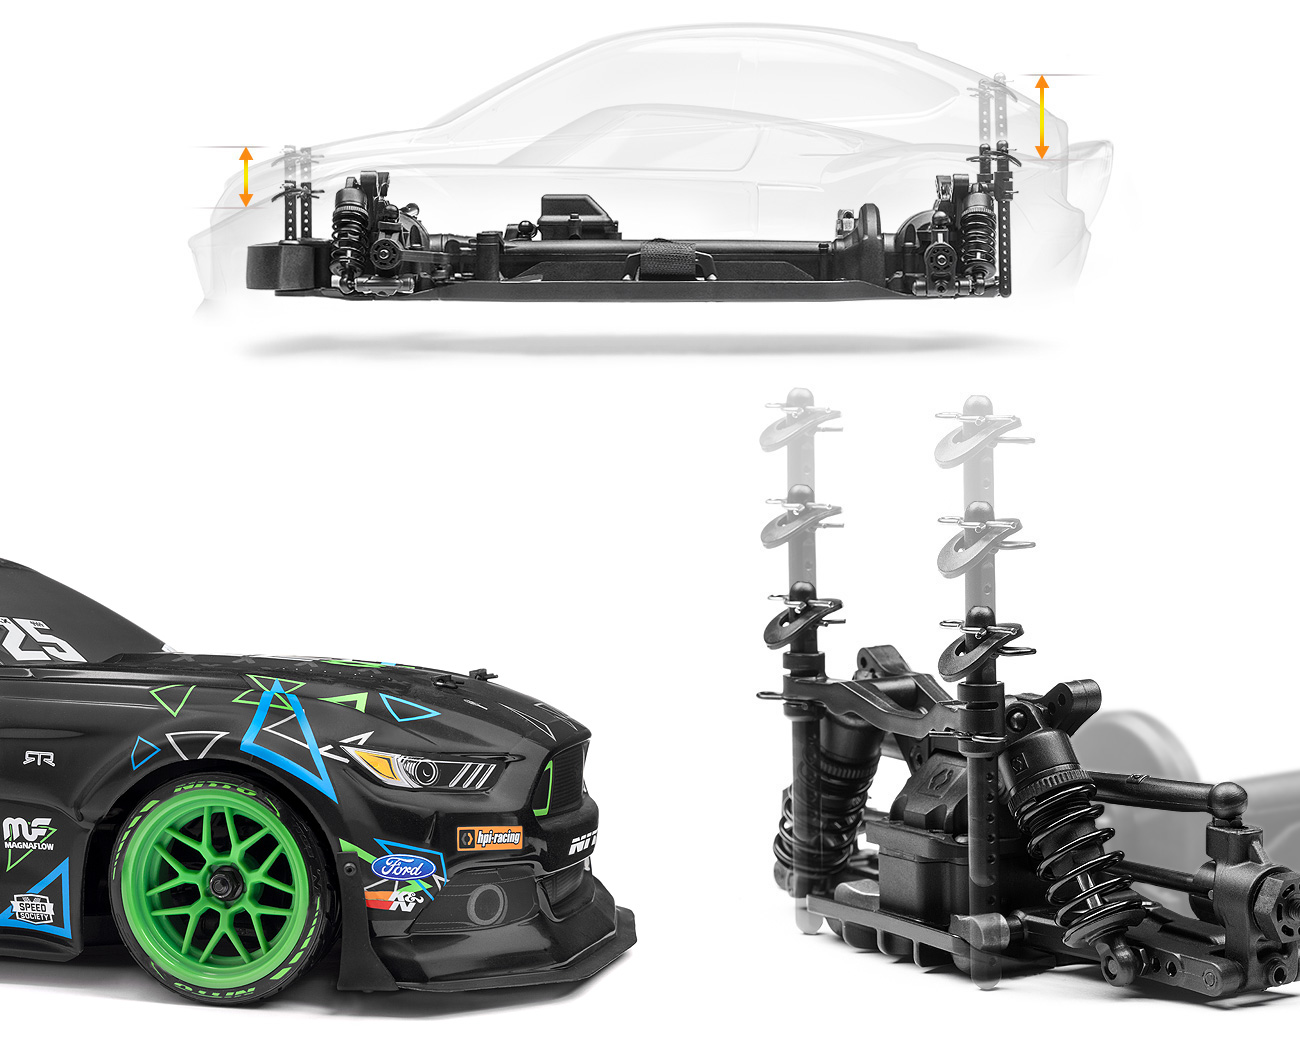 RS4 SPORT 3 VGJR FORD MUSTANG 1/10 4WD ELECTRIC CAR (#115984) | HPI ...